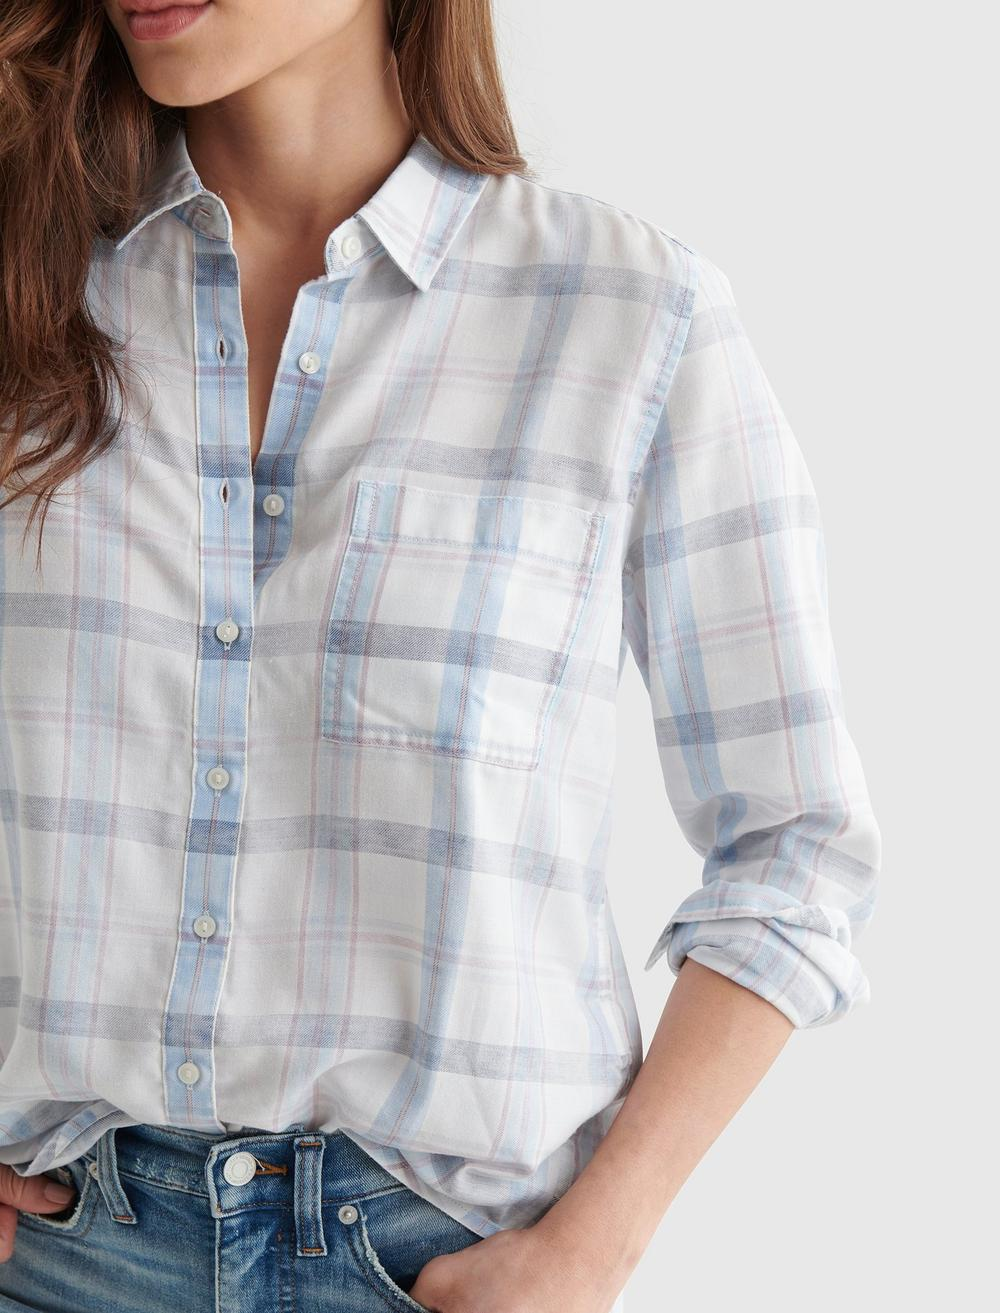 RELAXED-FIT PLAID WOVEN SHIRT, image 4